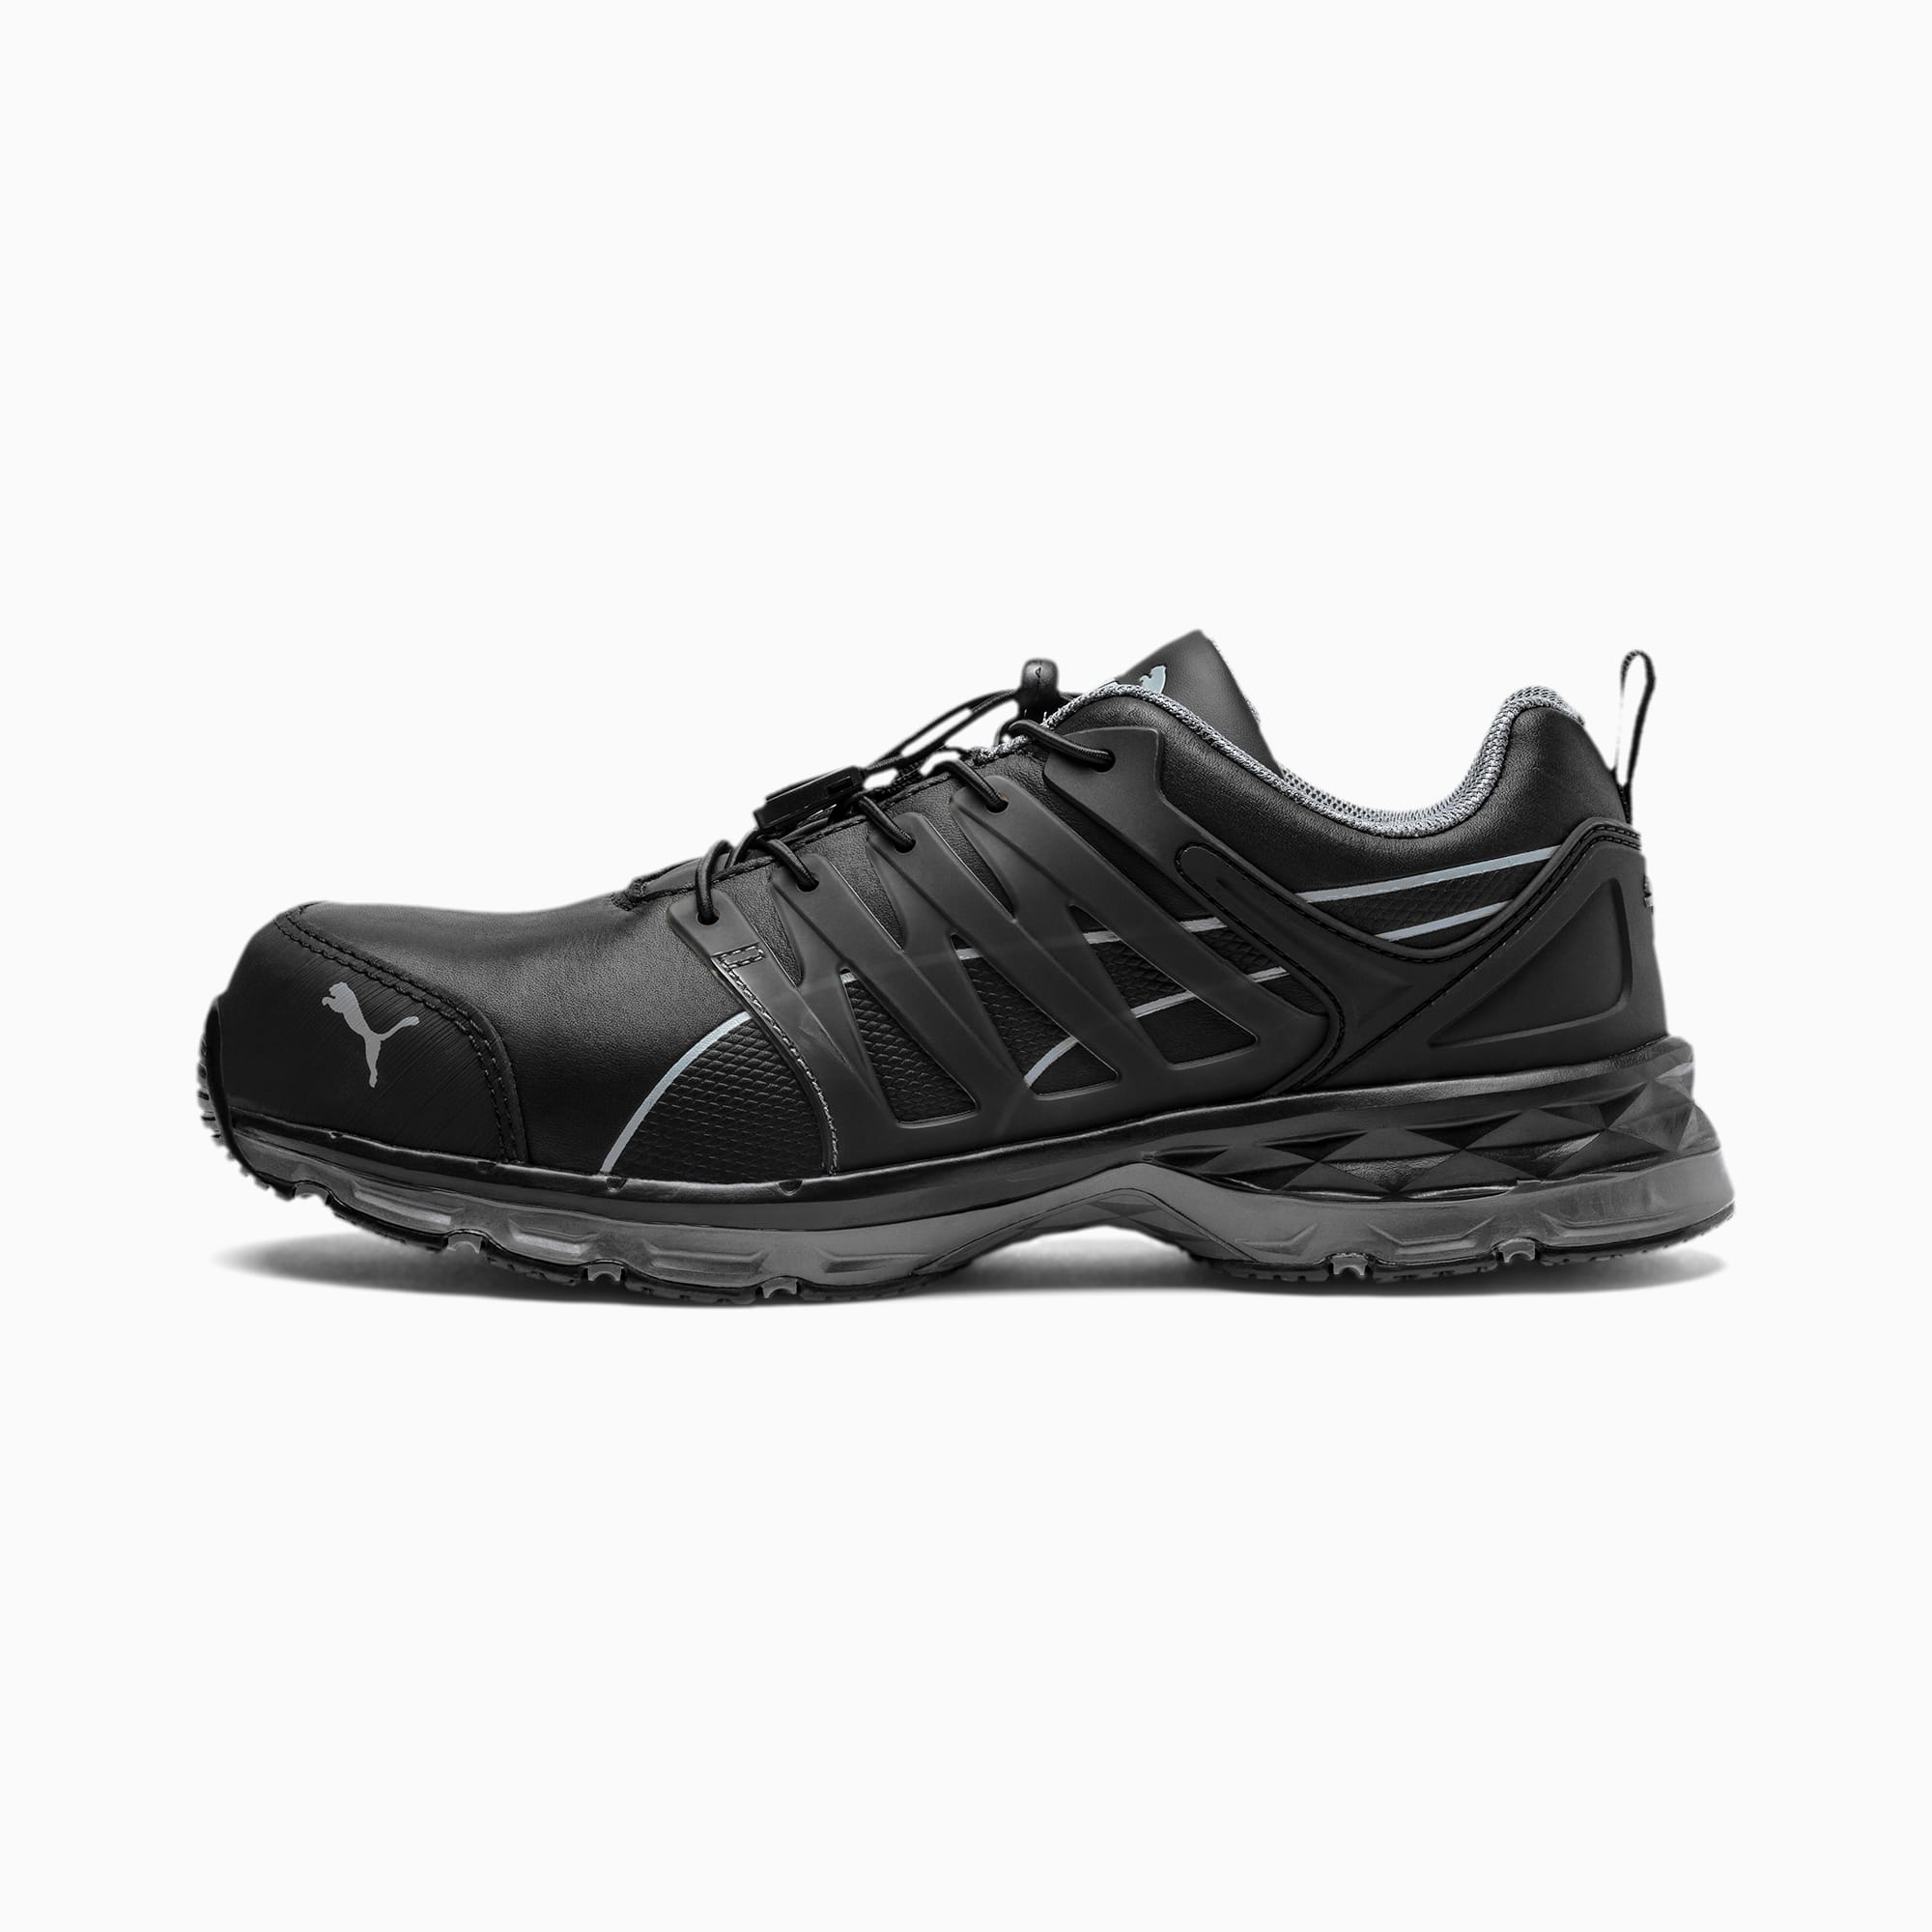 Velocity 2.0 Low S3 ESD Men's Safety Shoes